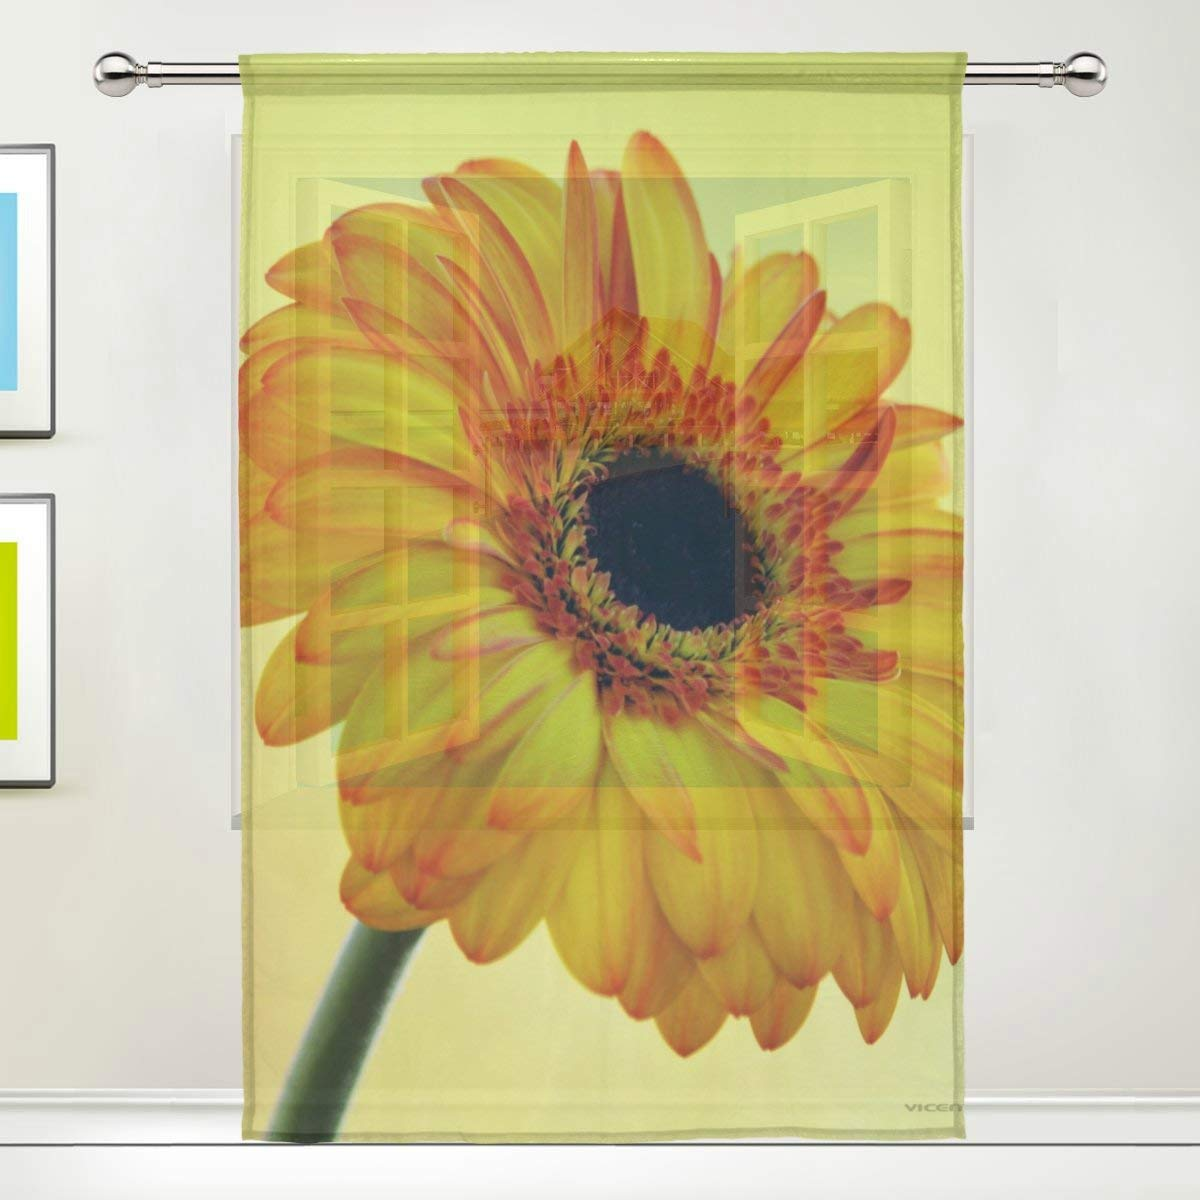 Cheap yellow flower curtains find yellow flower curtains deals on get quotations tsweethome window treatments sheer curtains draperies with yellow burst flower for living room bedroom mightylinksfo